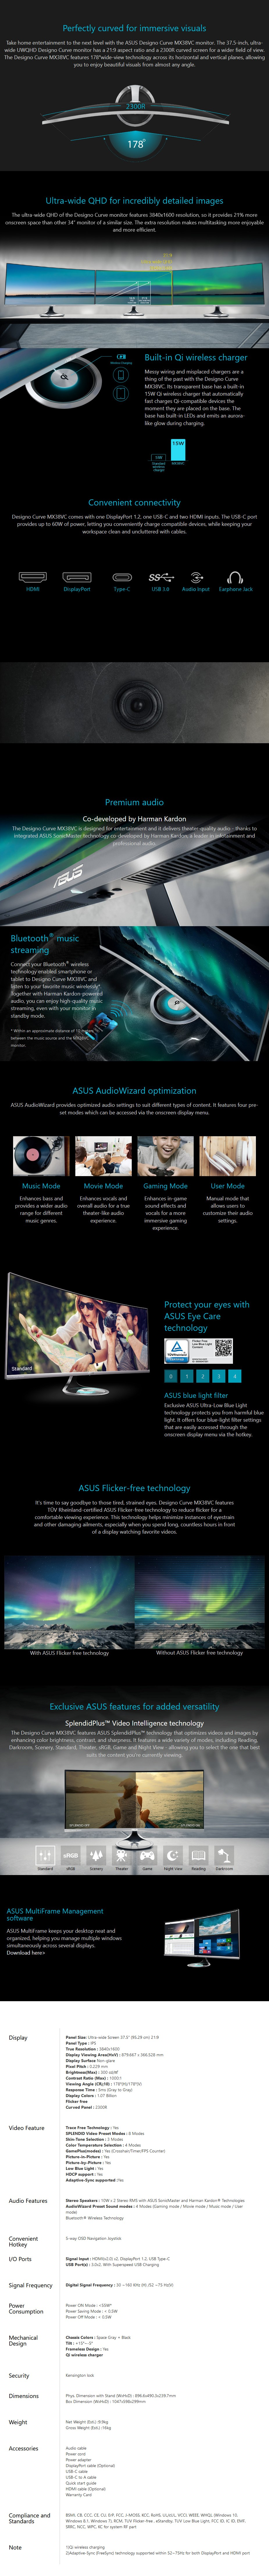 "ASUS Designo MX38VC 37.5"" Ultra-Wide QHD Curved IPS Monitor - Overview 1"